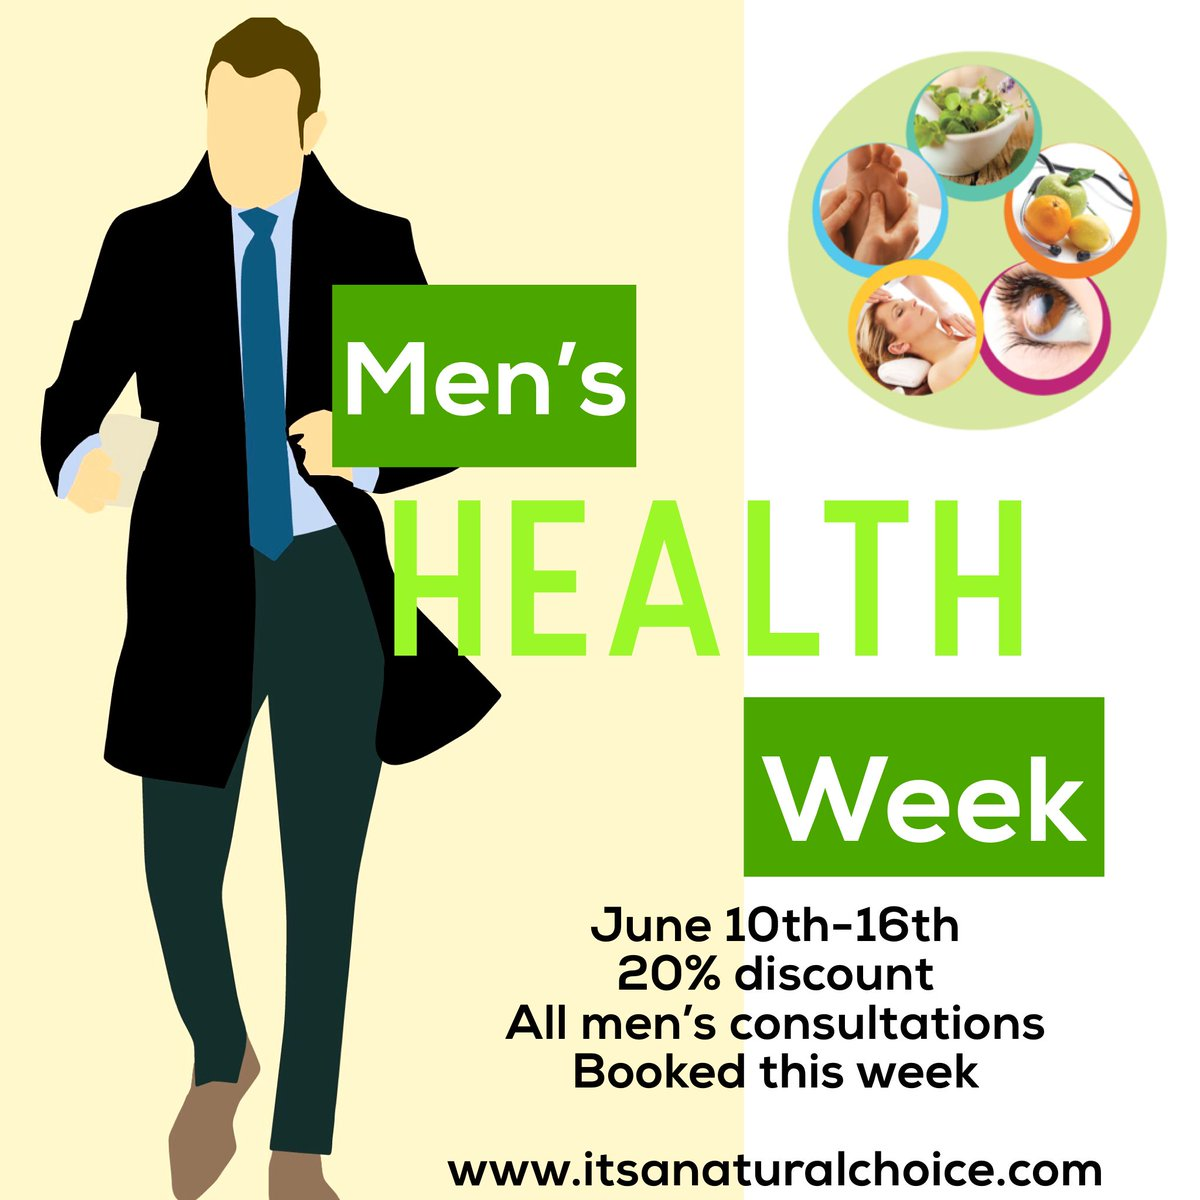 #MensHealthWeek   20% discount on men's consultations booked this week  #HealthyEating #HeartHealth #Arthritis #Prostate #Energy #Sleep #Libido #Pain #guthealth  I have wonderful male clients getting great results, Want to join them?  E- info@itsanaturalchoice.com T- 0870978880